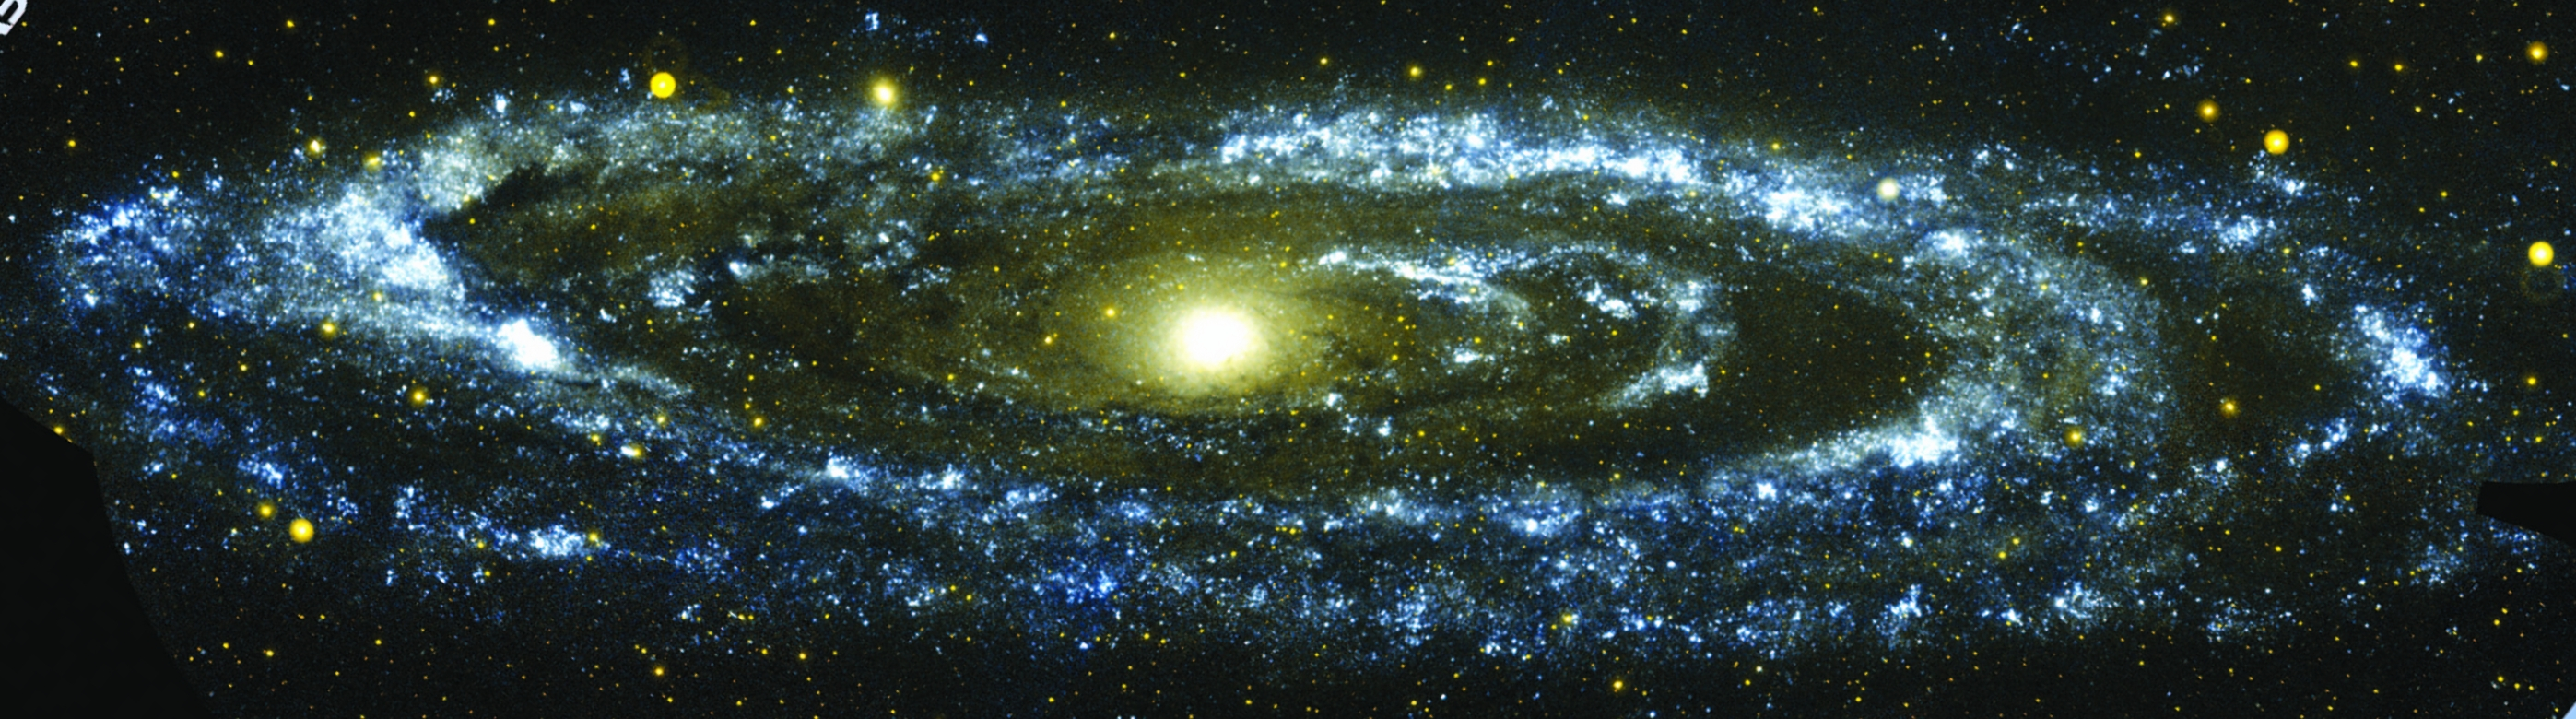 Our nearest big neighbor, the Andromeda Galaxy (M31), seen here in ultra-violet light as detected by the GALEX satellite